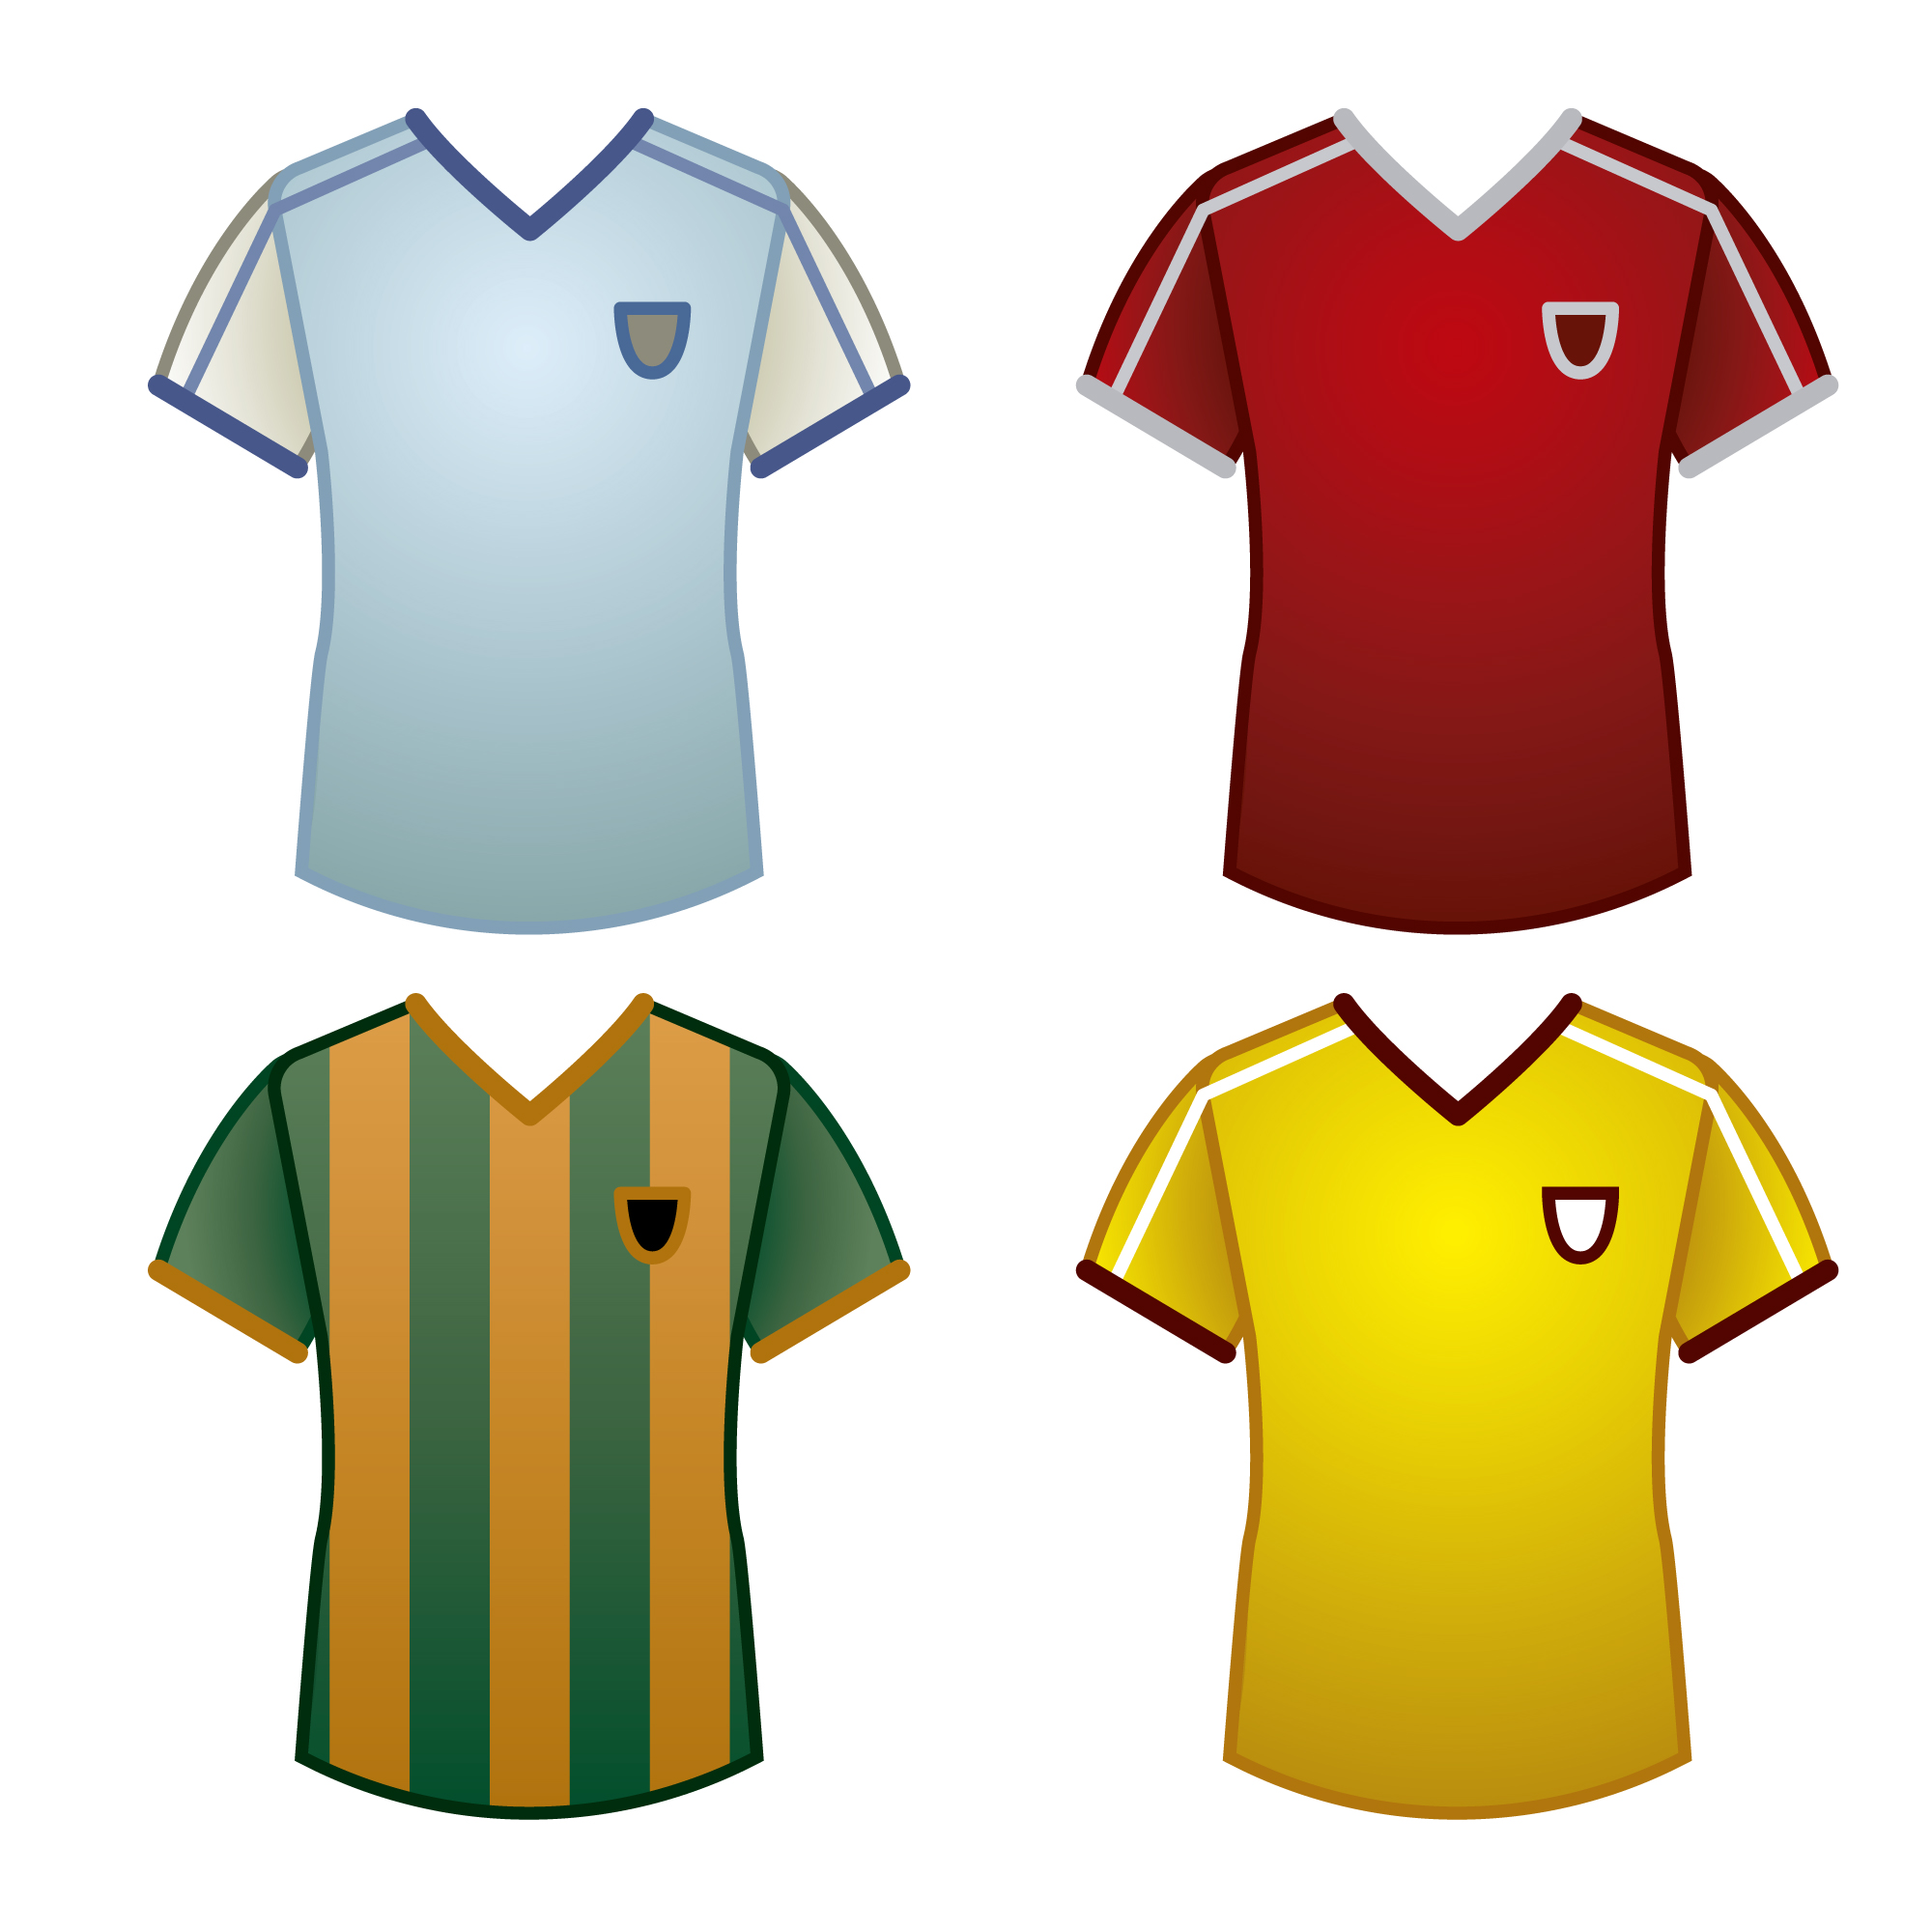 Sportive t-shirt collection